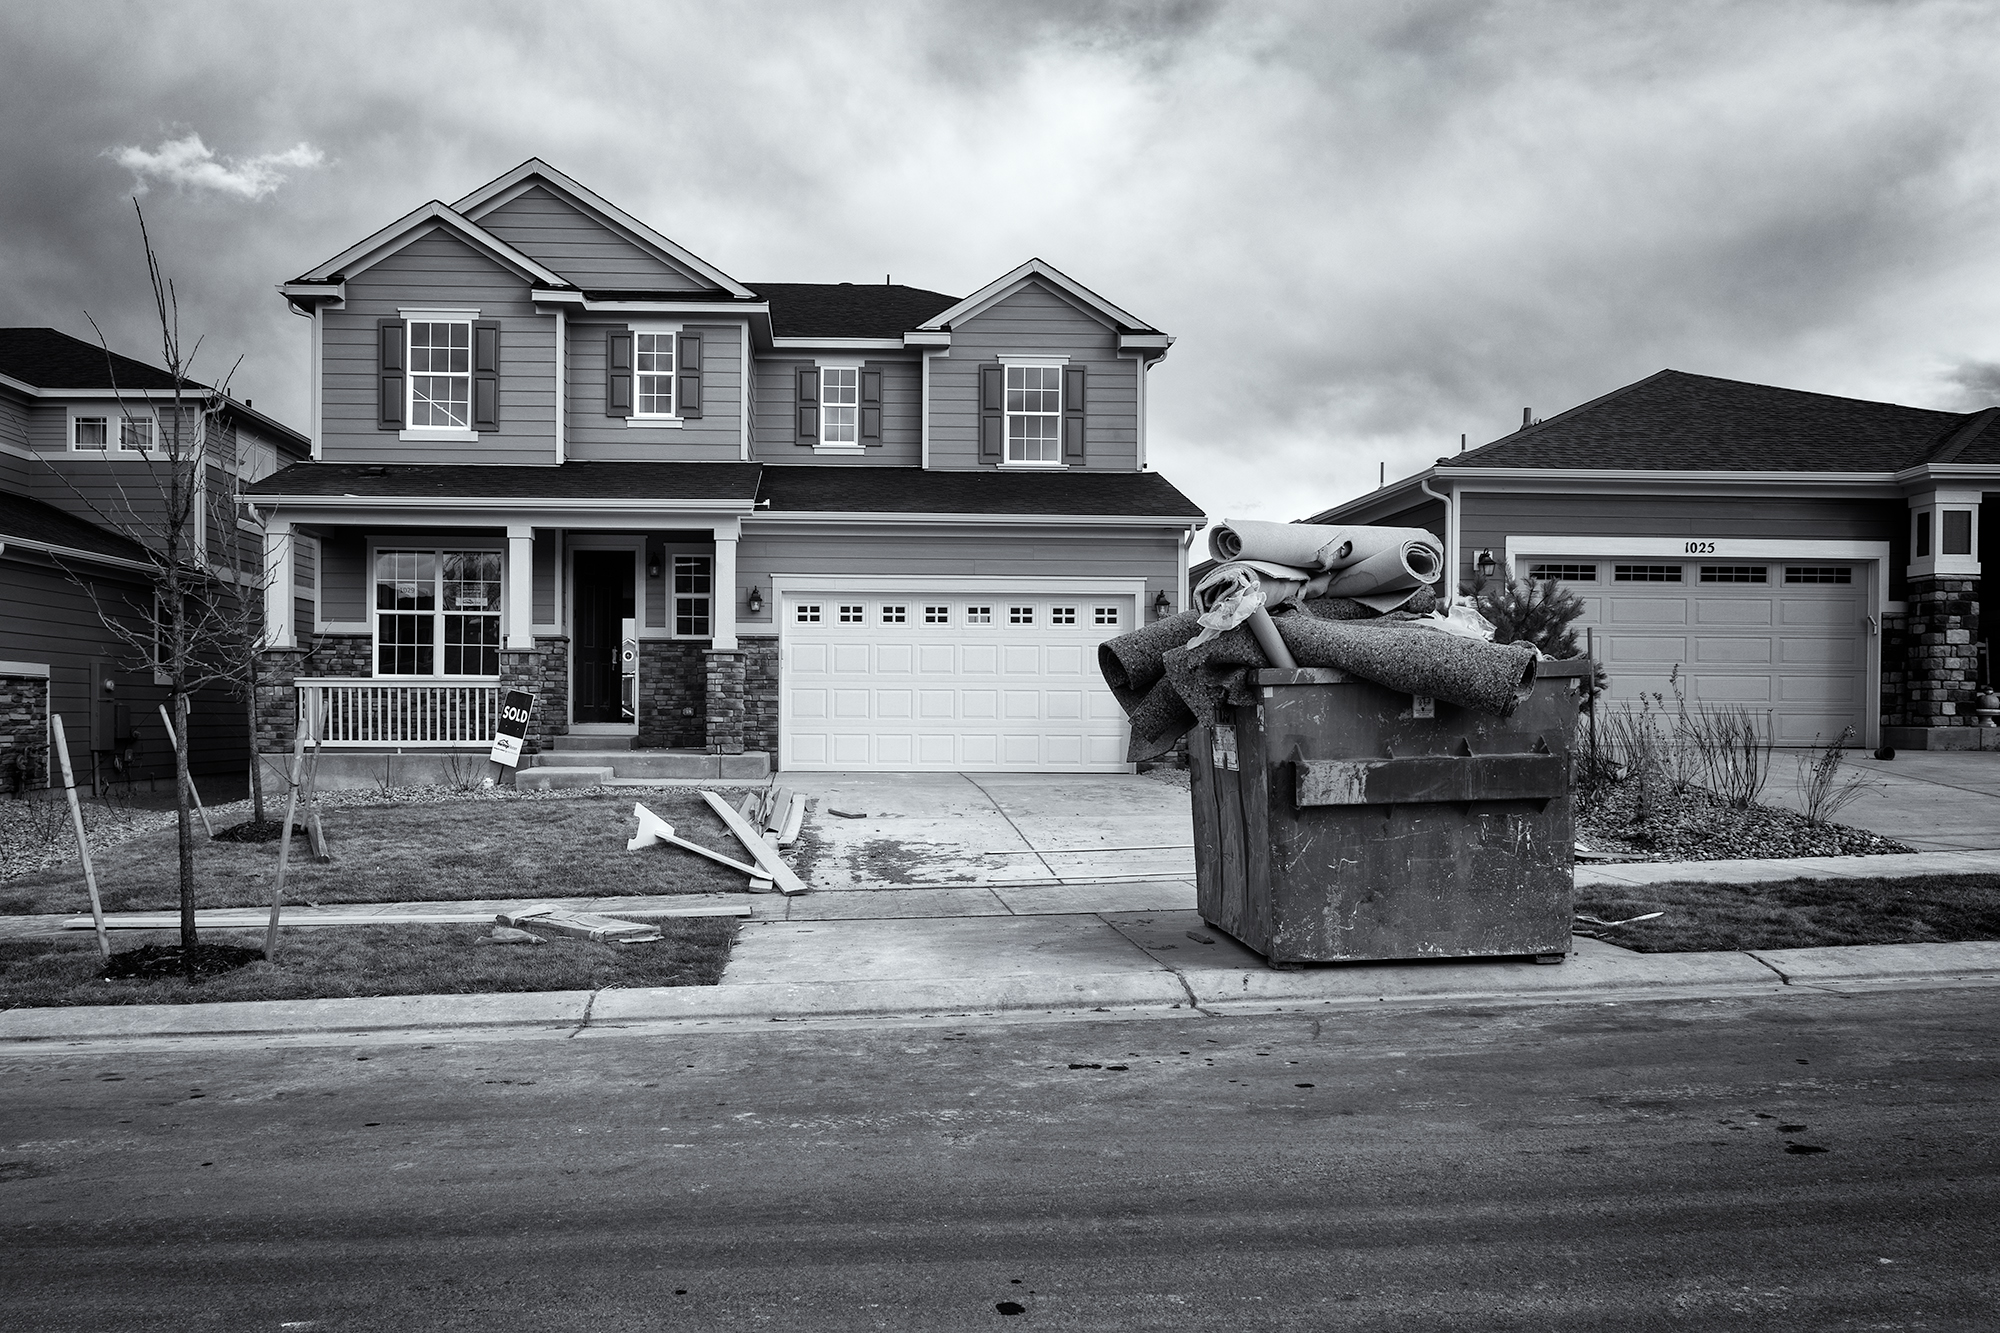 Nearly Ready at 1029 Rosebud Circle. Near Longmont, Colorado, 2016